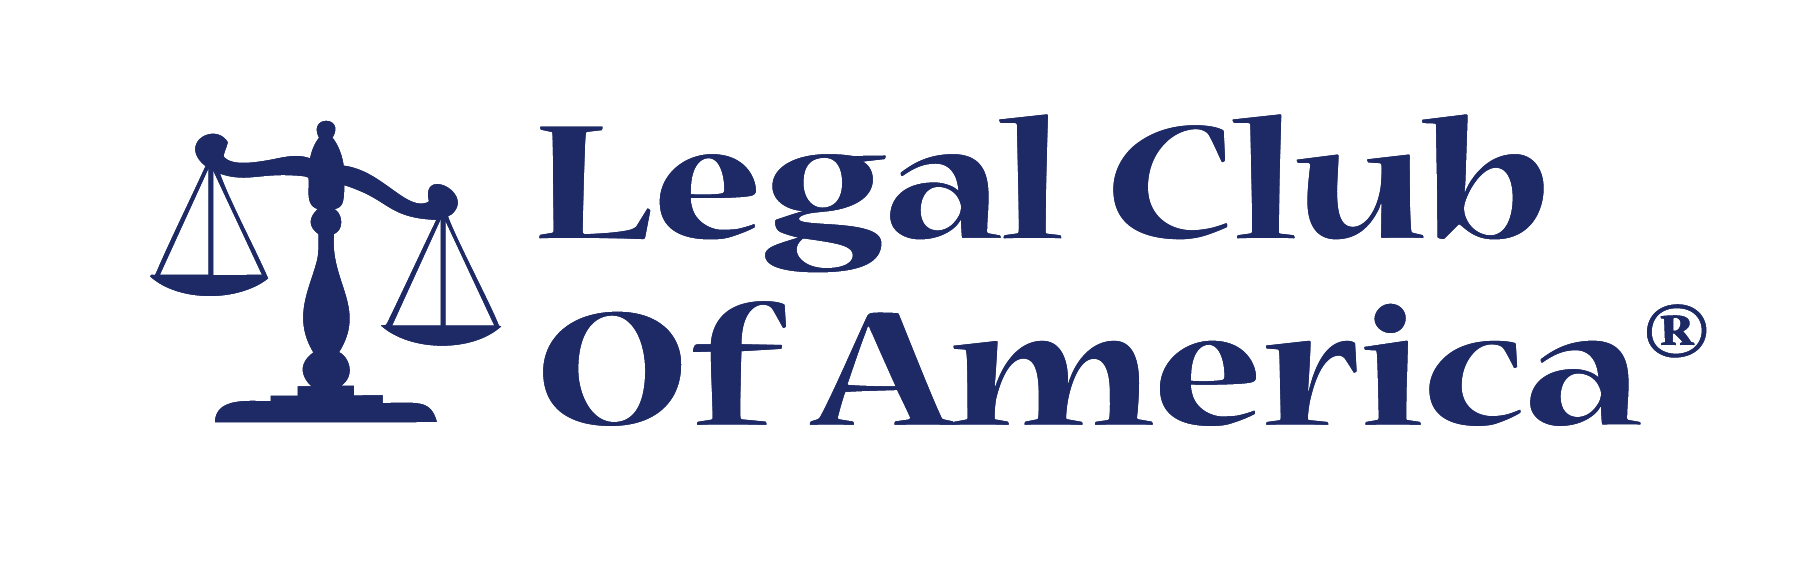 Legal Club of America ® Legal Services